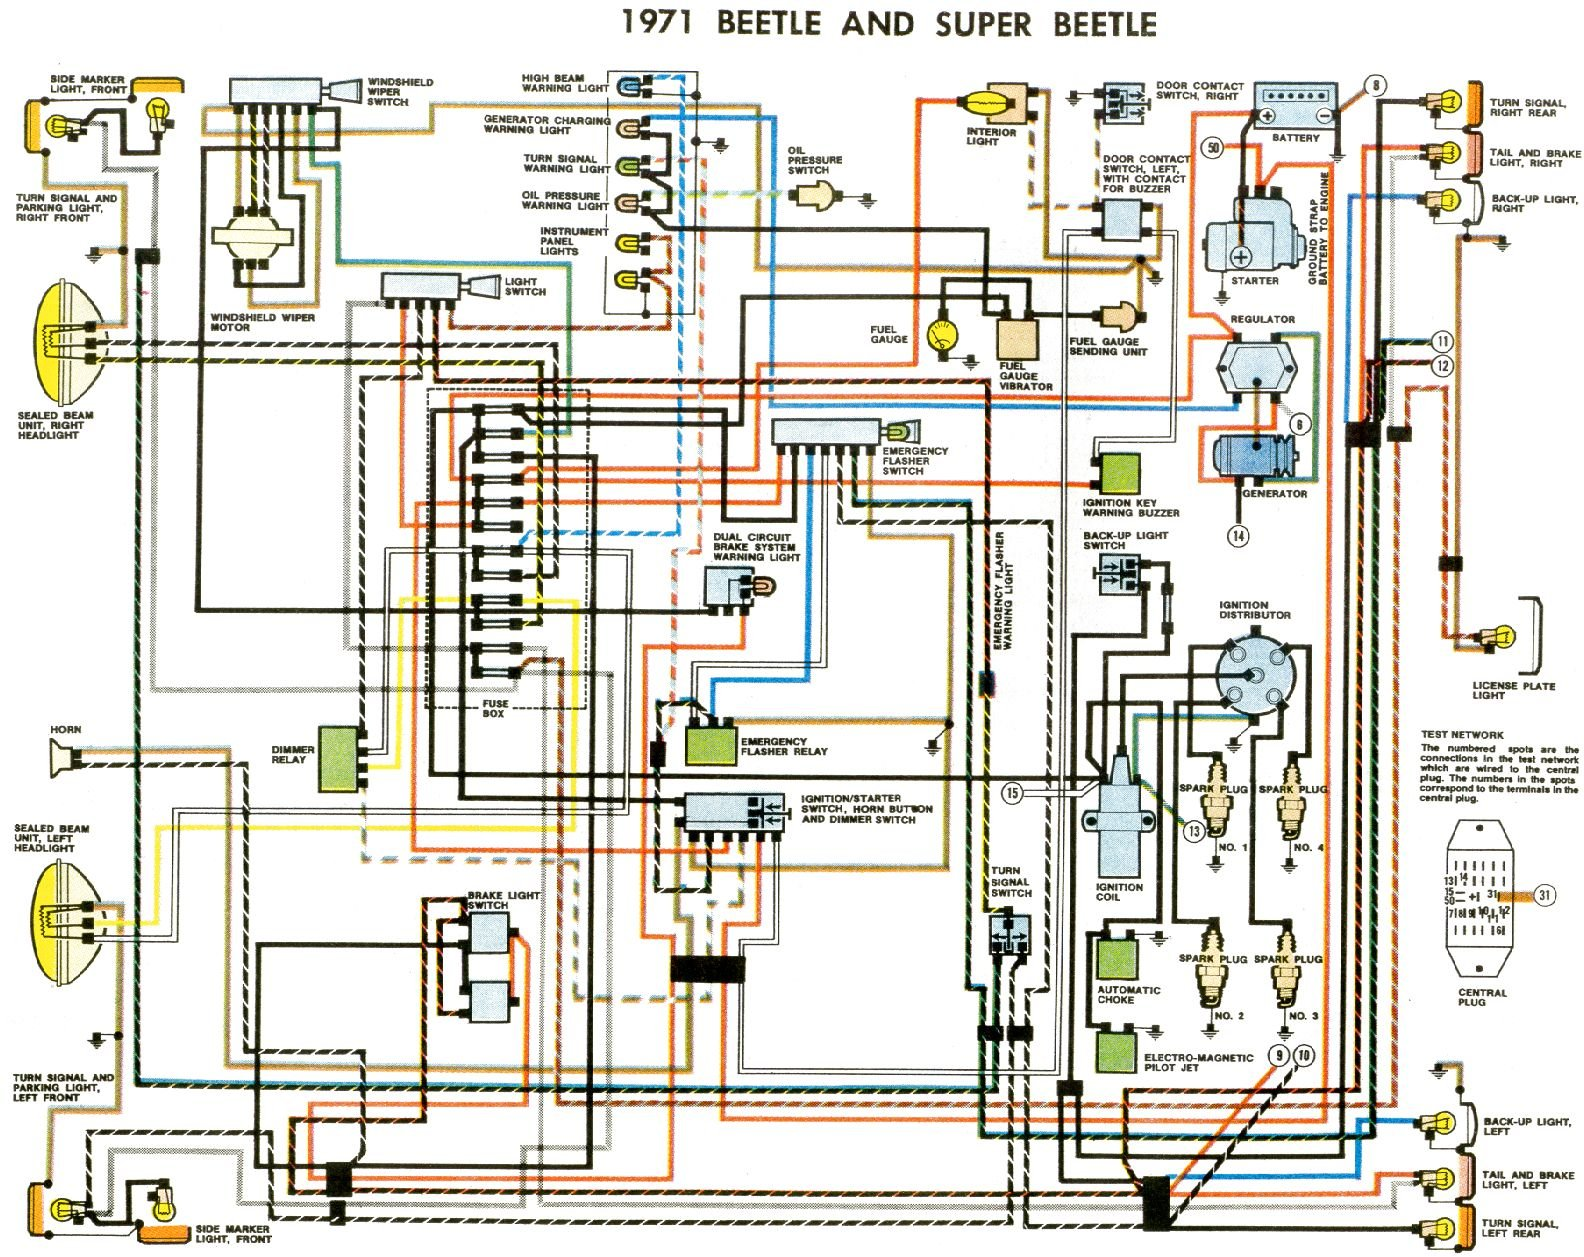 1971 Beetle Wiring    Diagram     USA    TheGoldenBug